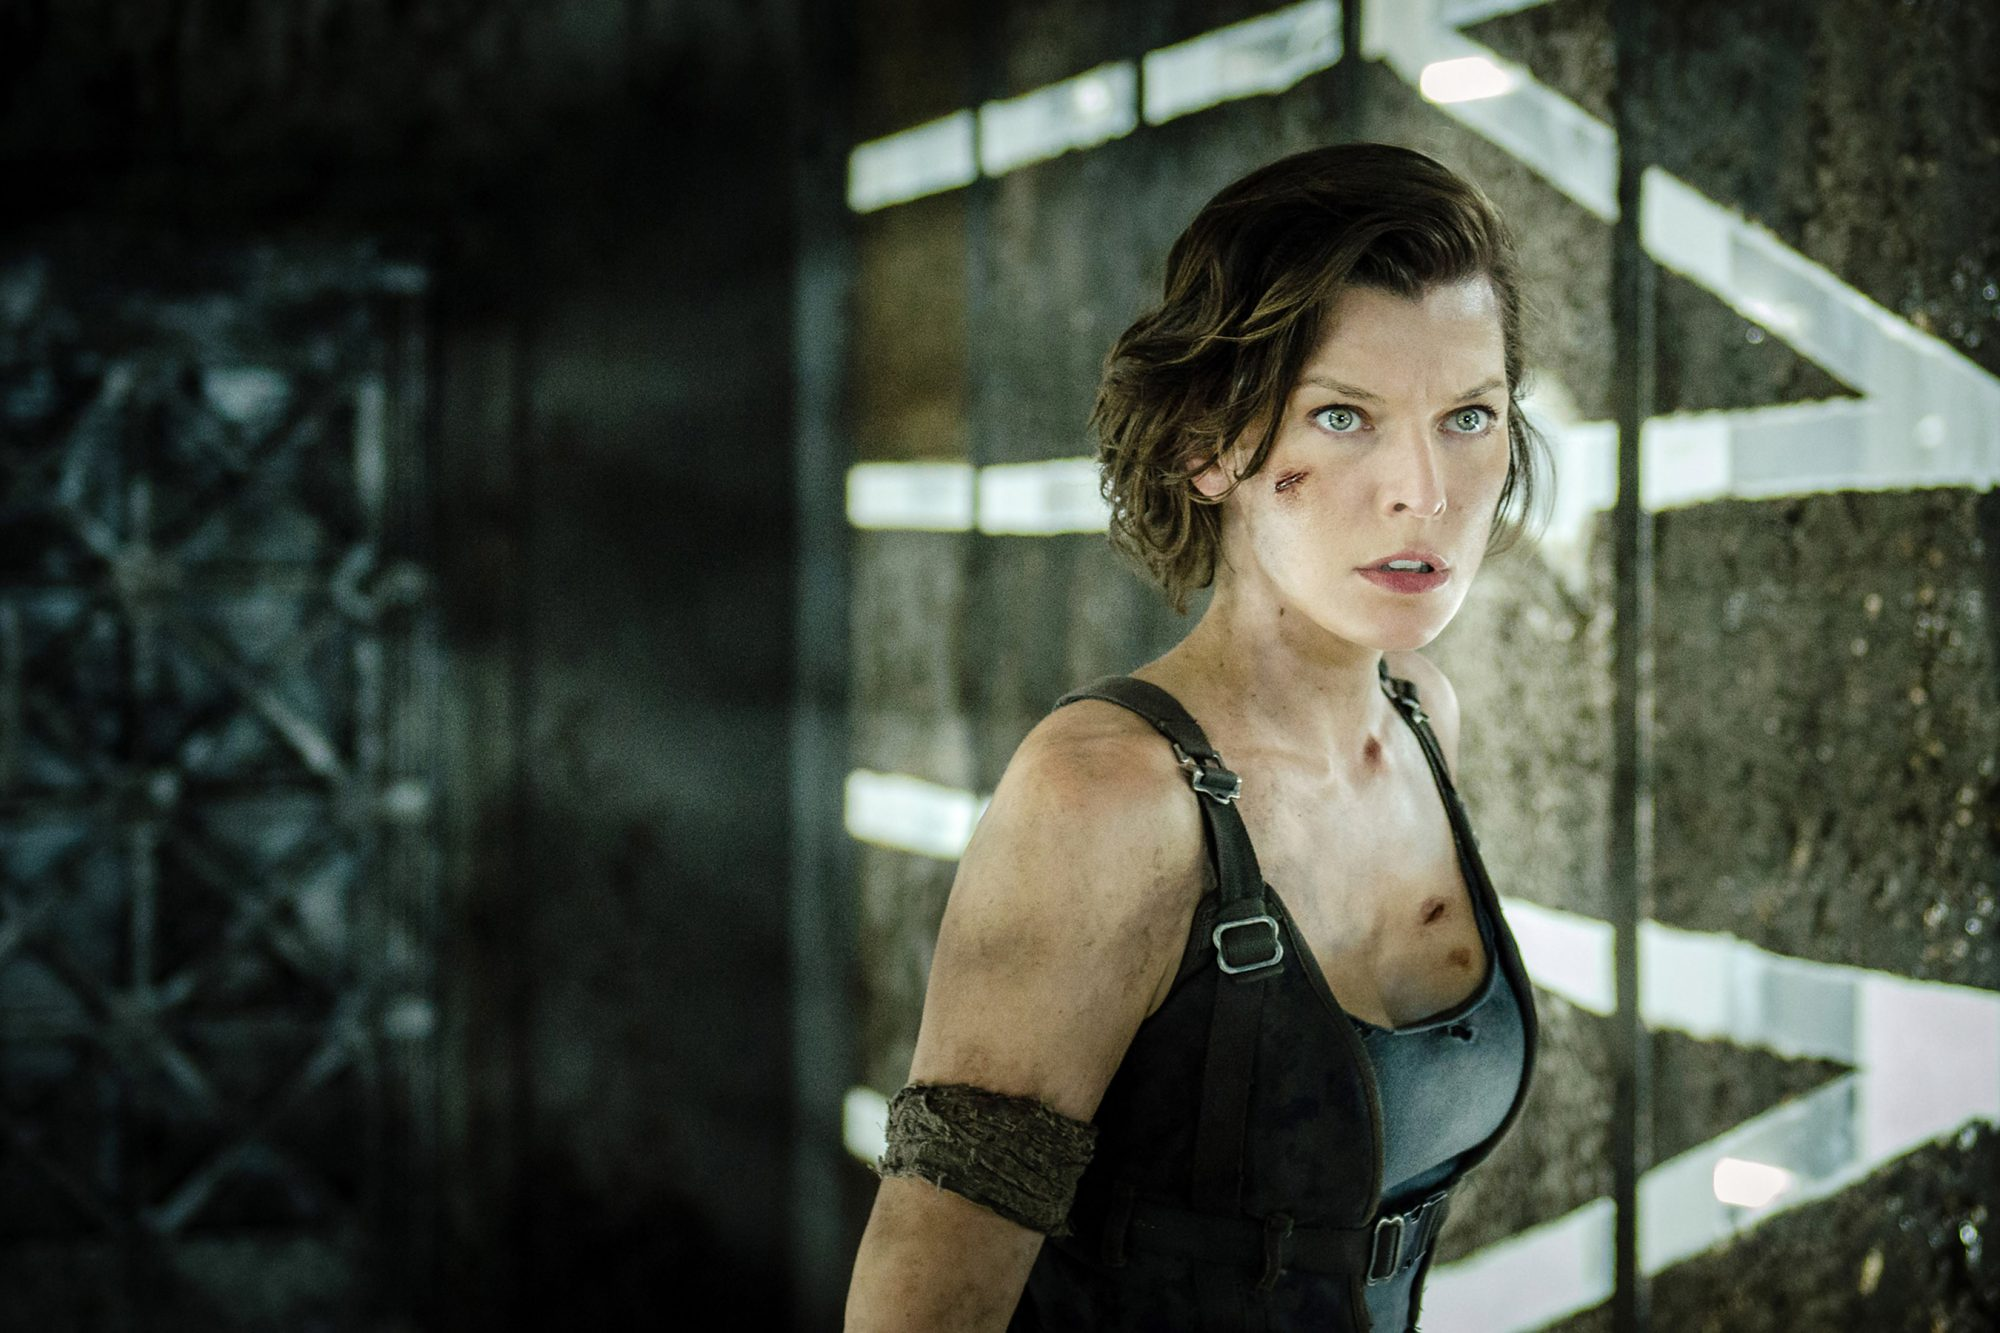 RESIDENT EVIL: THE FINAL CHAPTER, Milla Jovovich, Iain Glen, 2016. ph: Coco Van Oppens/©Screen